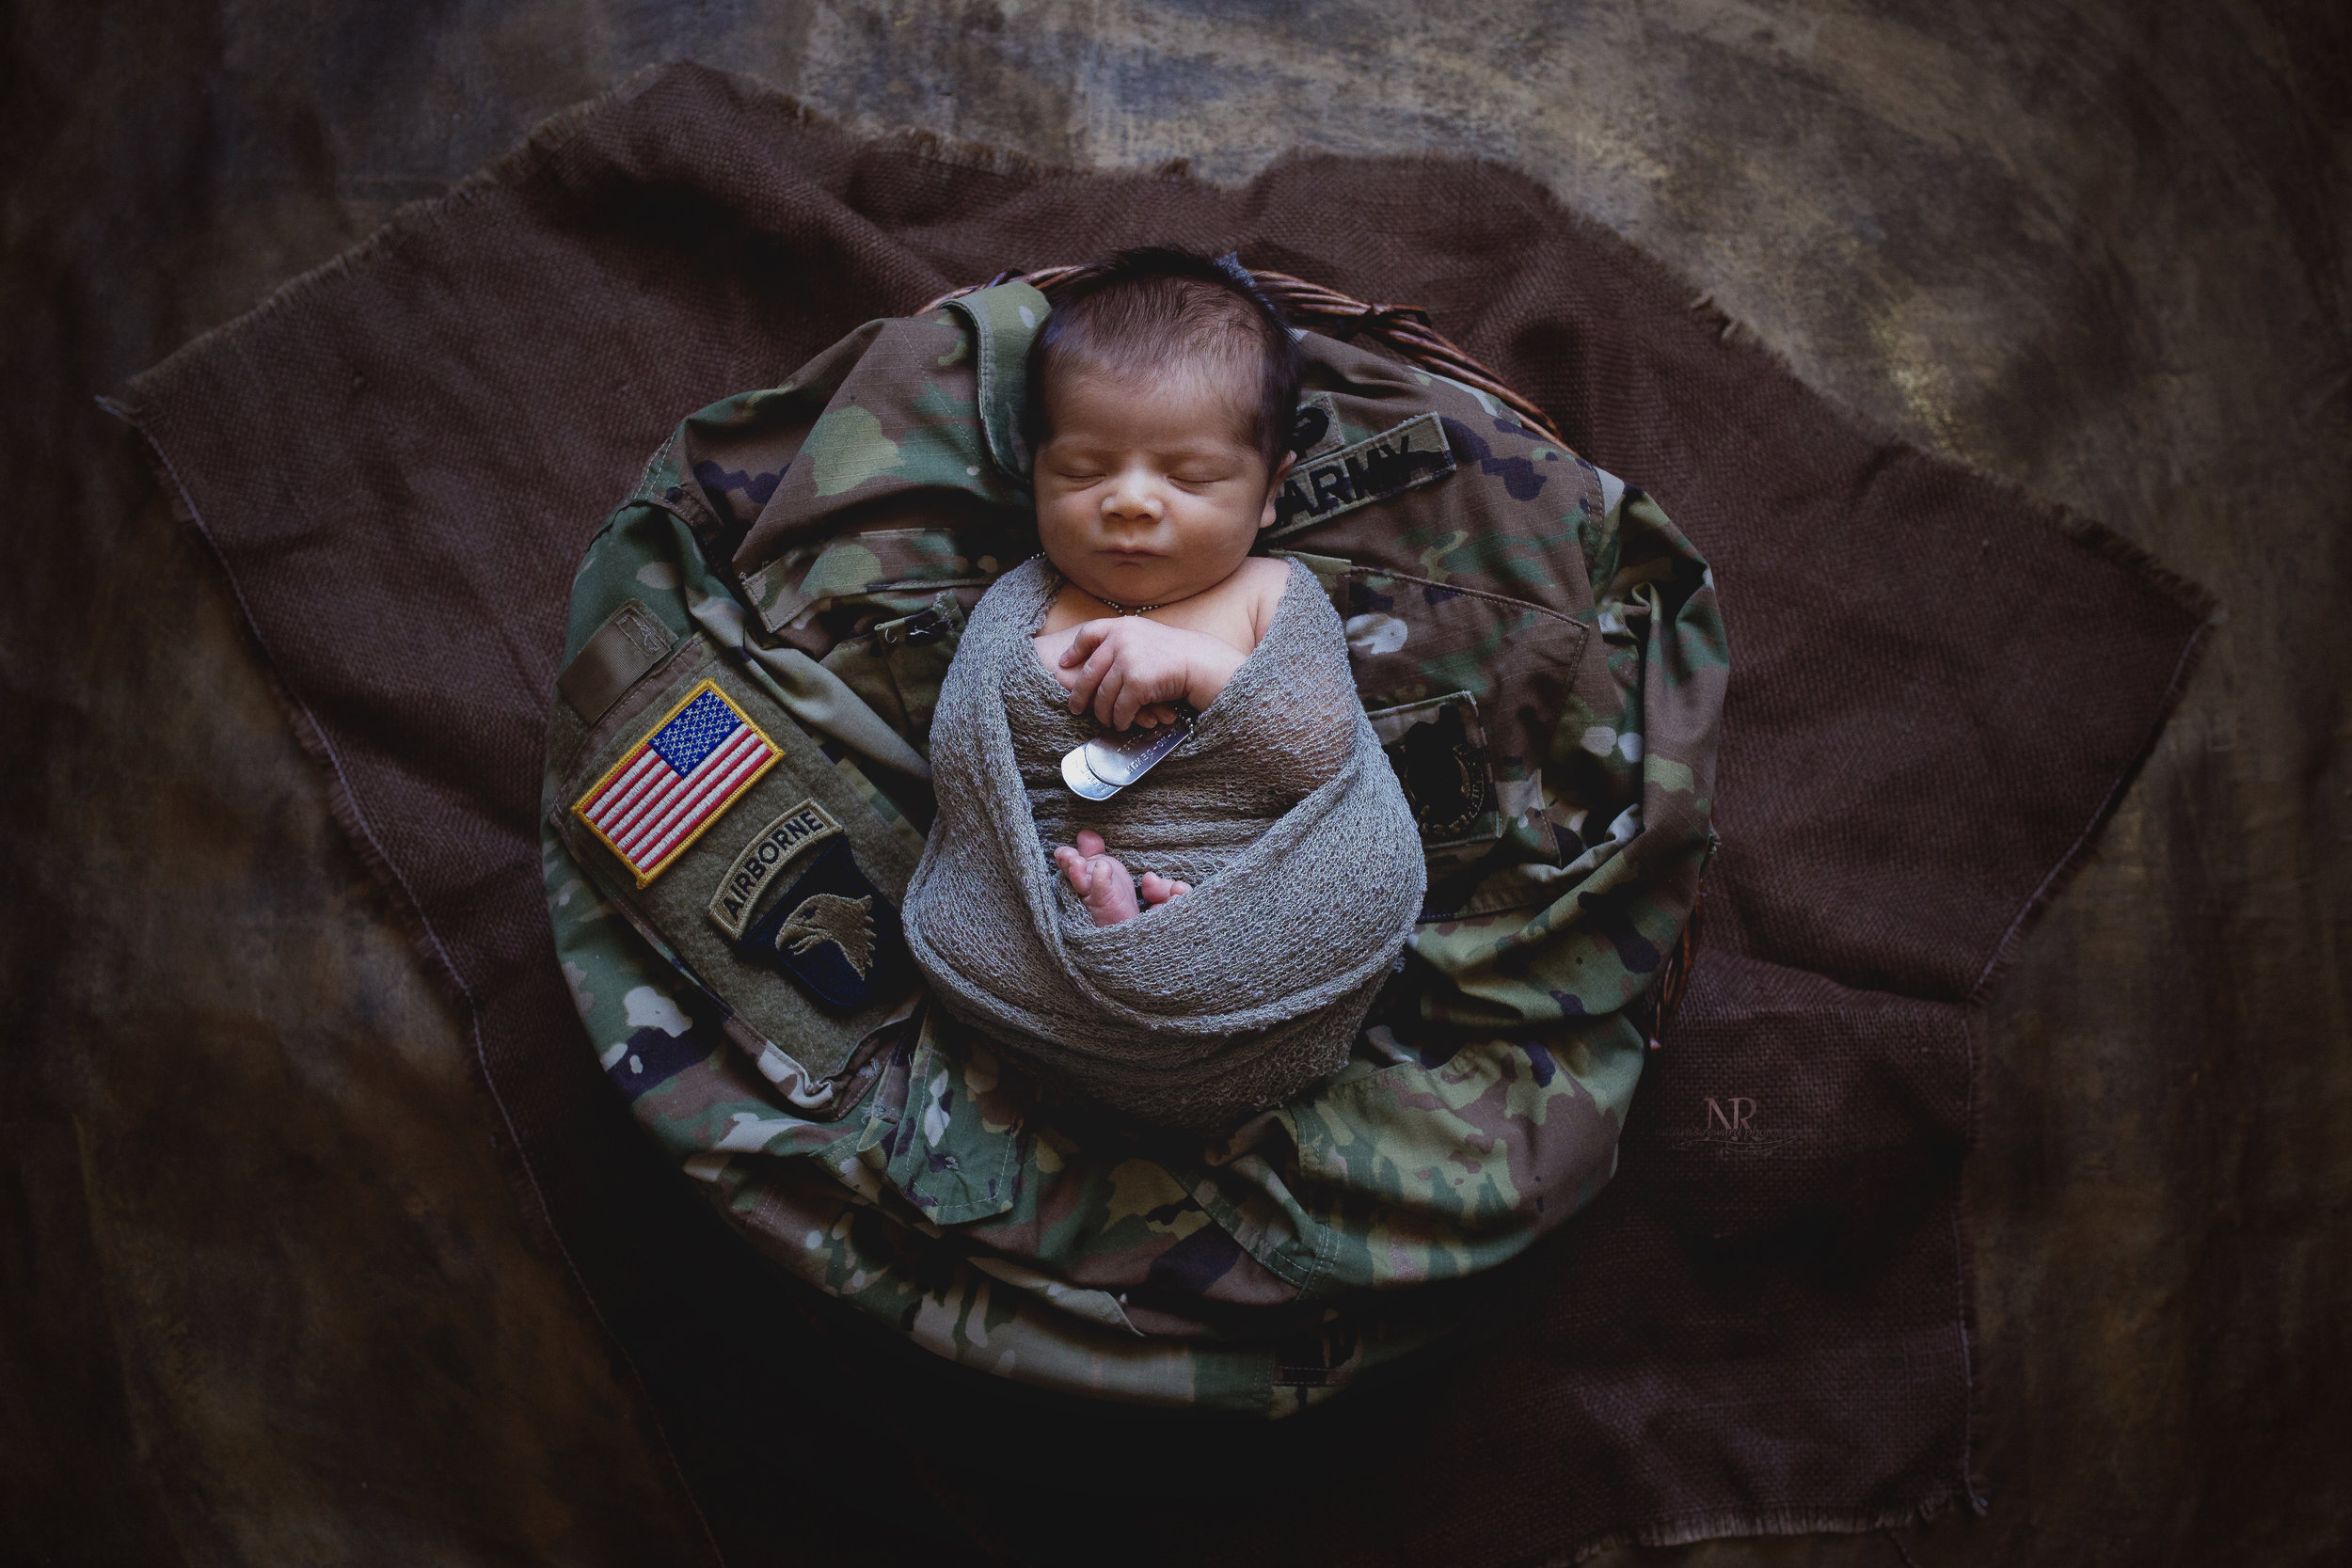 Newborn Baby Boy Lays on his dad's service uniform. {Name cloned out for privacy} I knew ahead of time that they wanted their baby boy to lay on this jacket. I wanted to look more impressive than a pile of laundry and give the uniform the respect it deserves. I hope I did it justice.